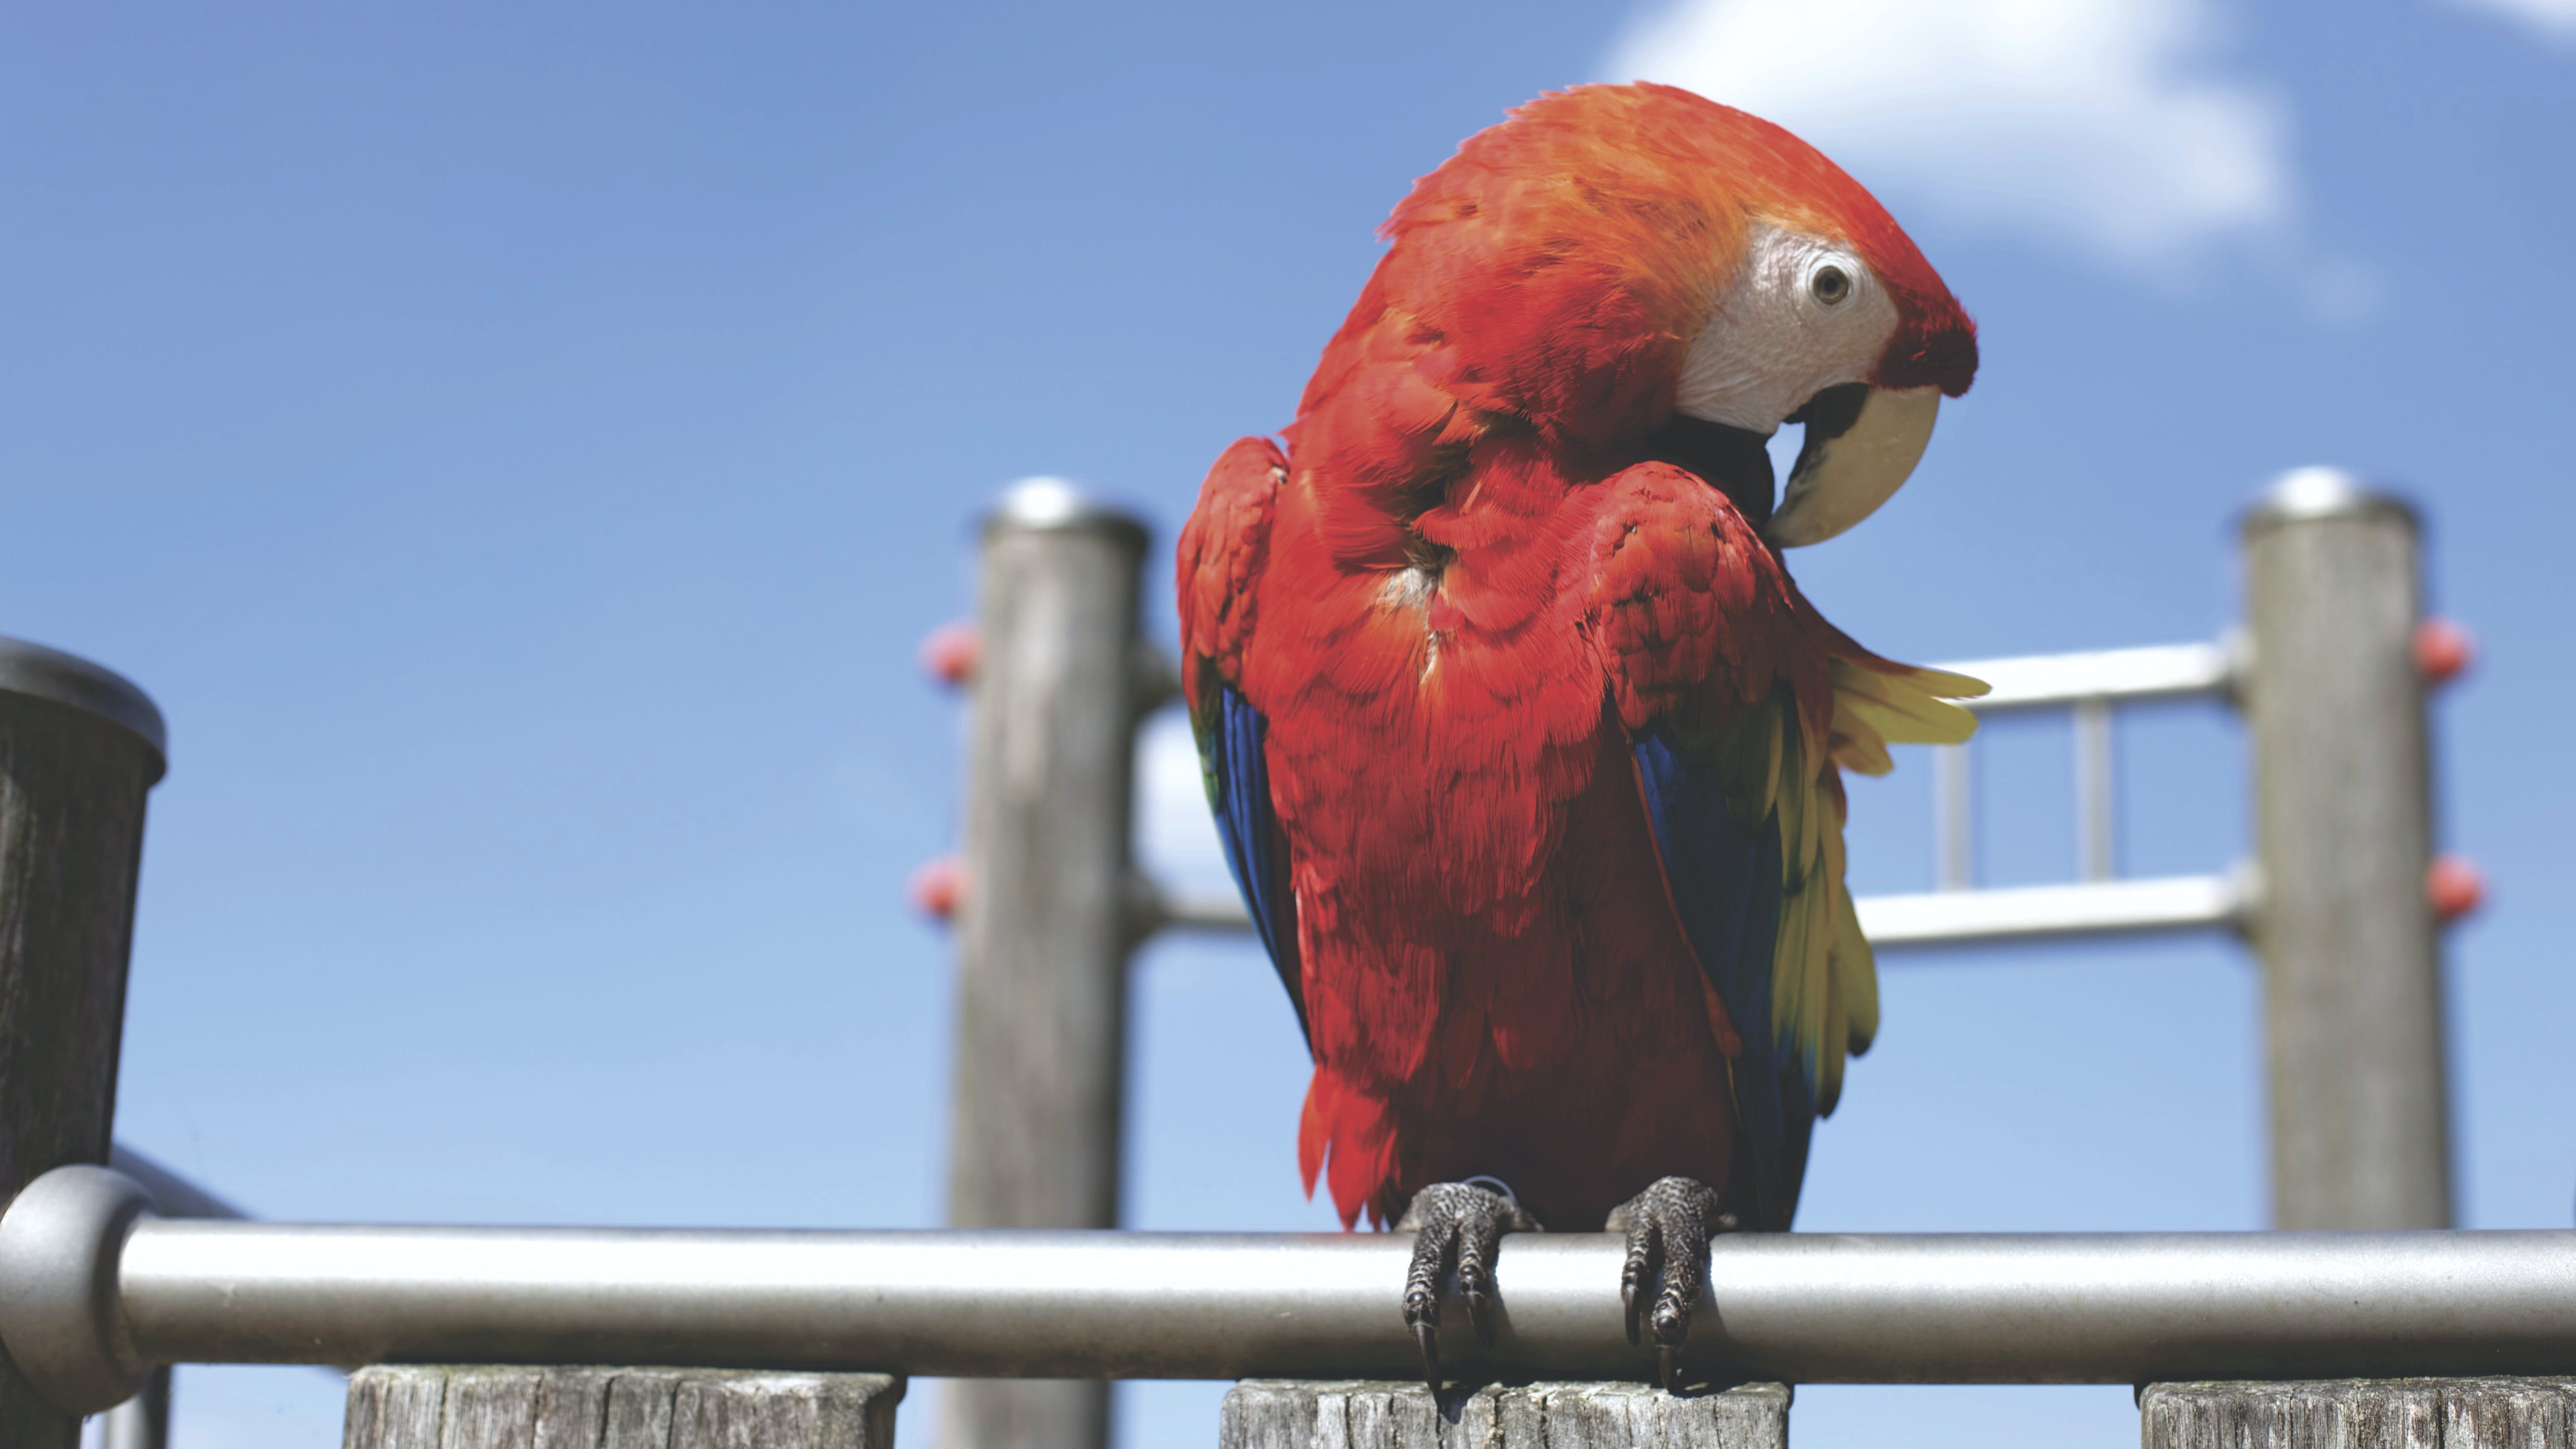 Red Parrot on Bar on Sunny Cloudless Day